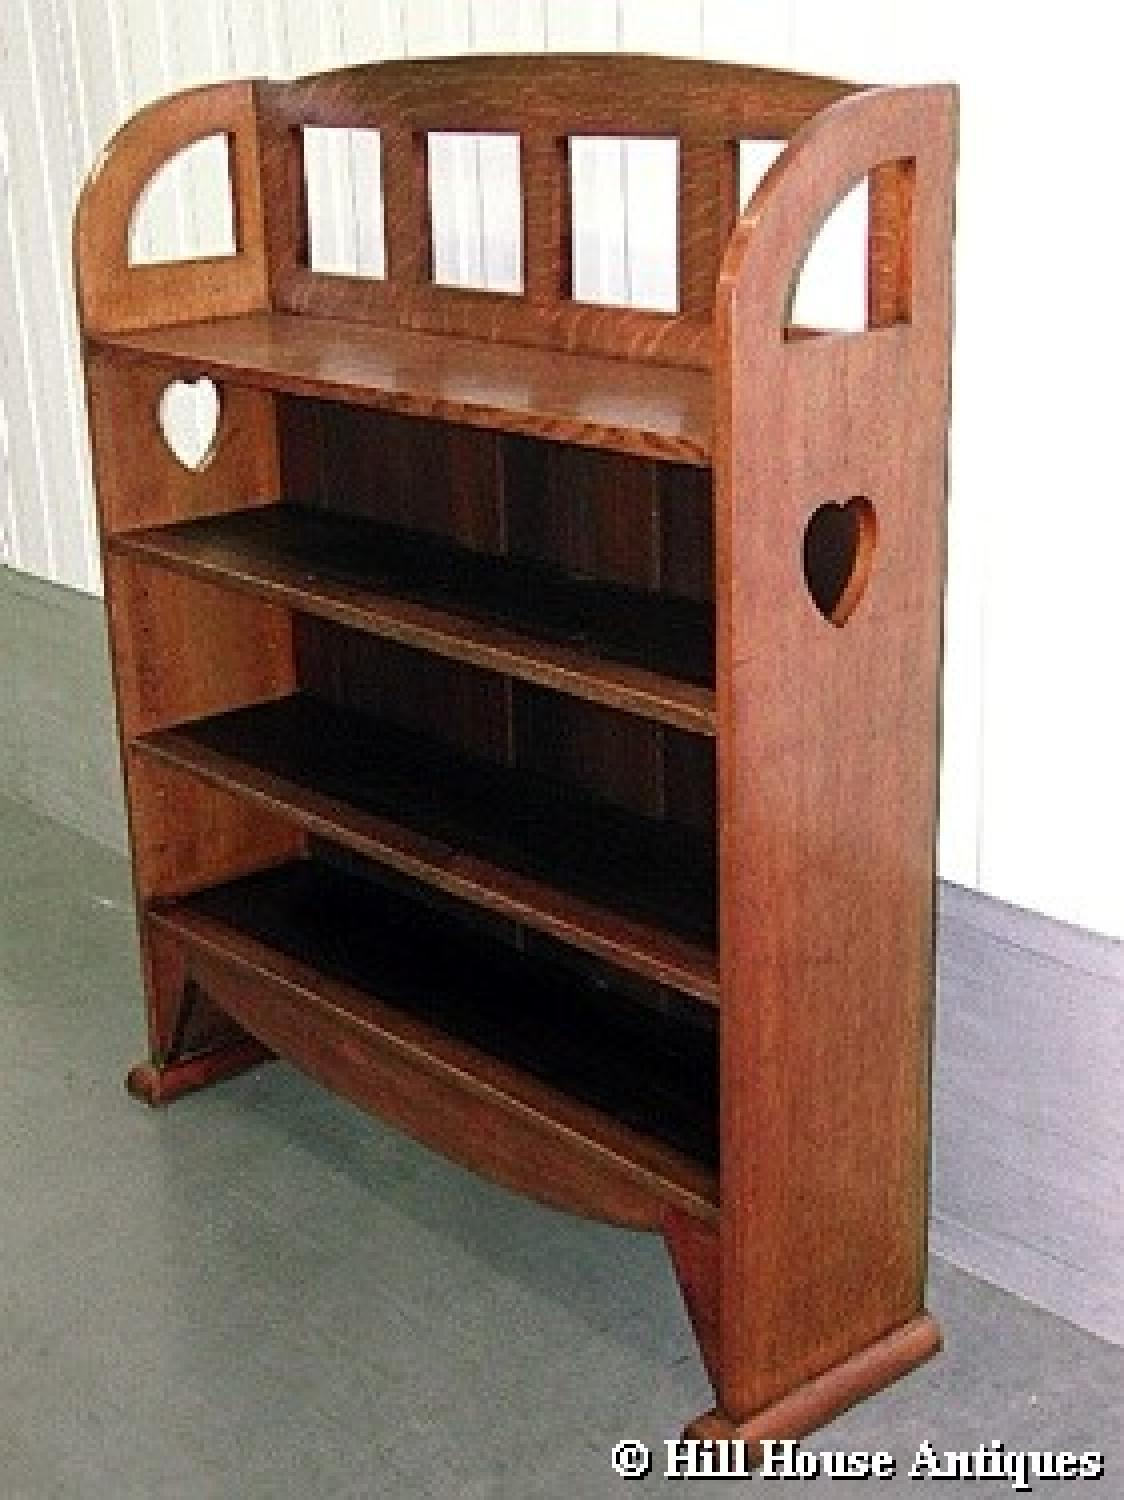 Wylie & Lochhead Arts & Crafts bookshelves